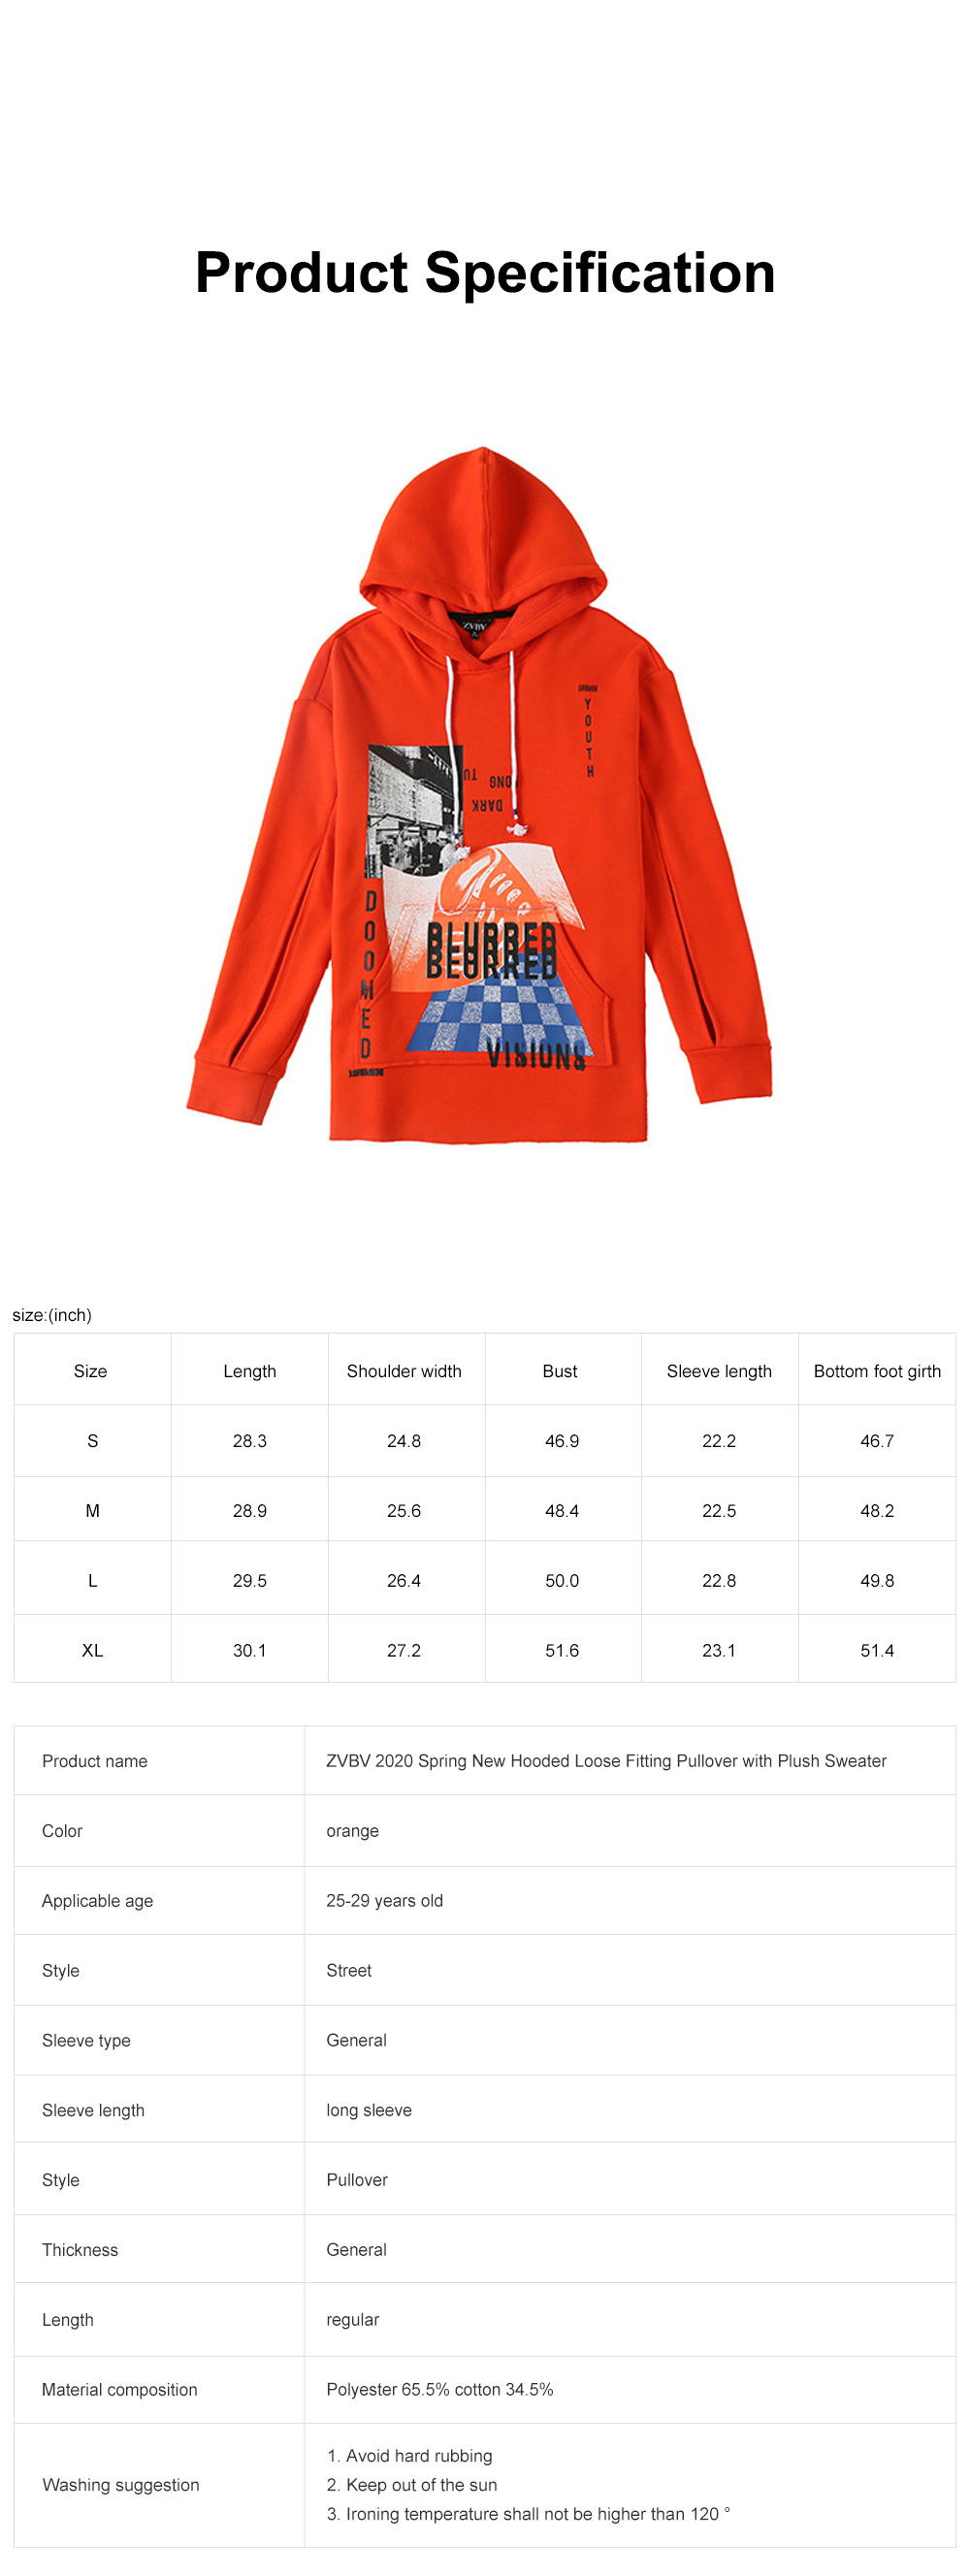 ZVBV 2020 Spring New Hooded Loose Fitting Pullover with Plush Sweater Women's Orange Medium Long Slouchy Top 6